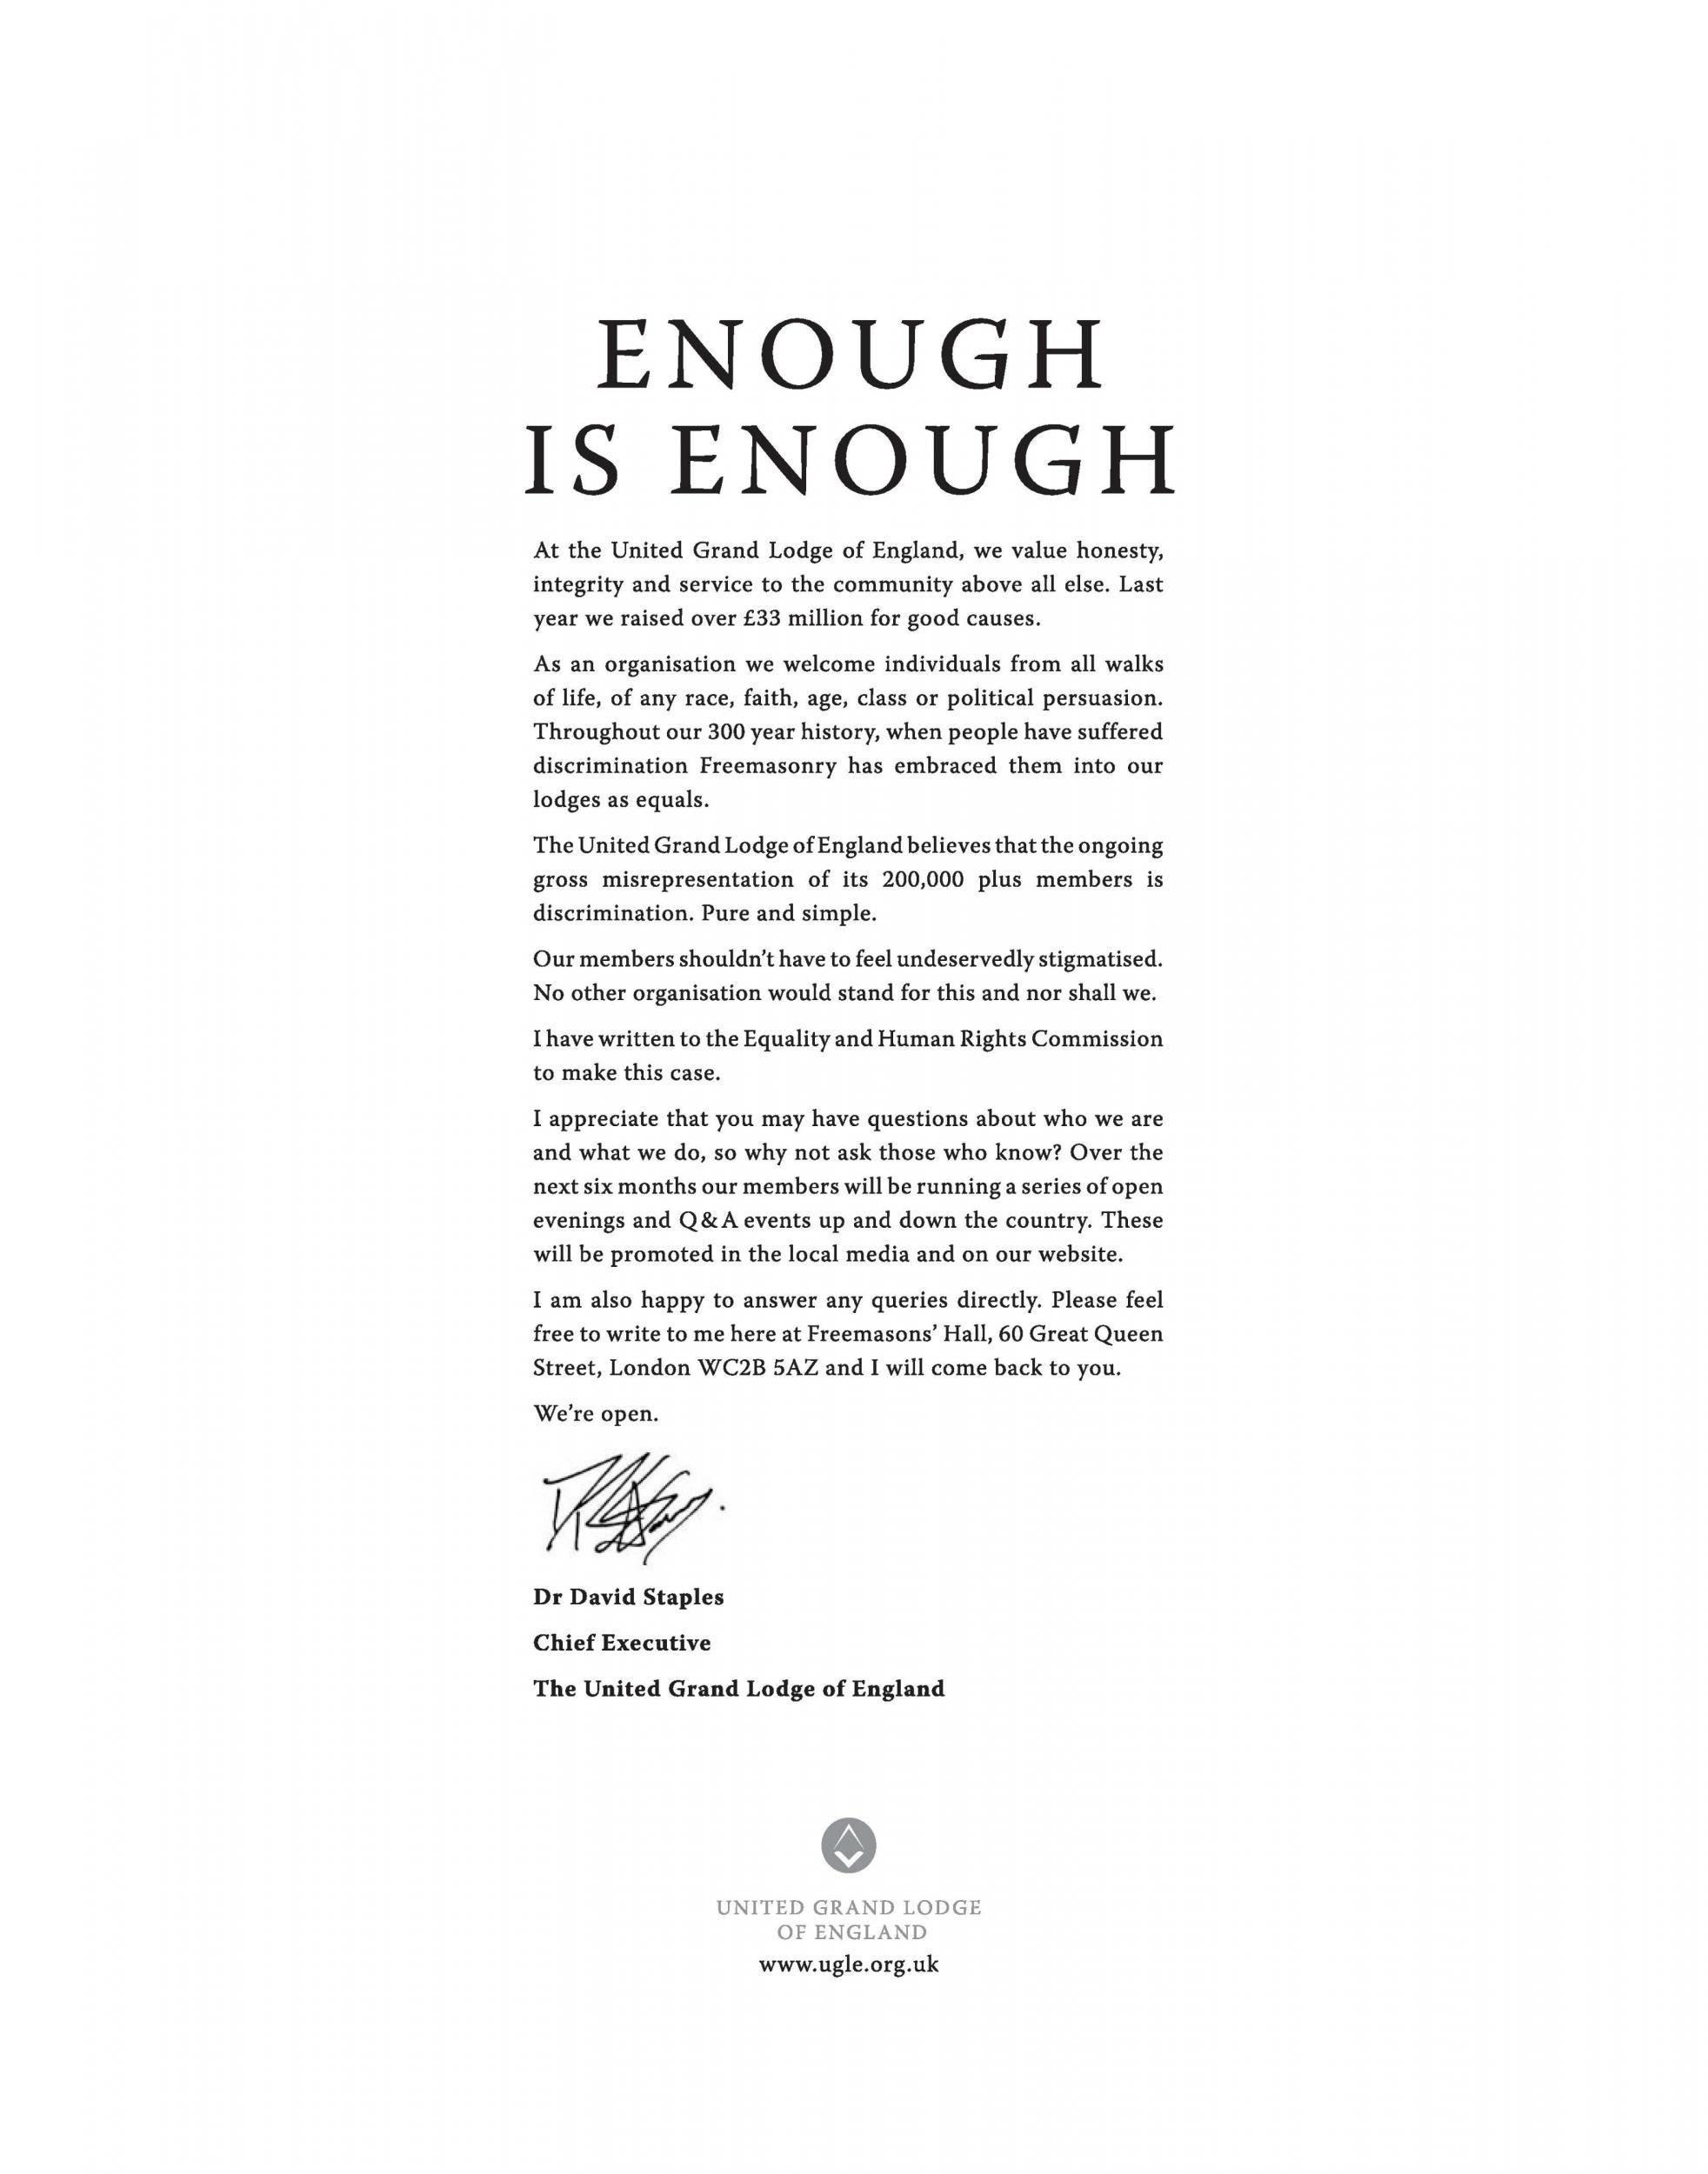 Freemasons place advert in national newspapers to protest